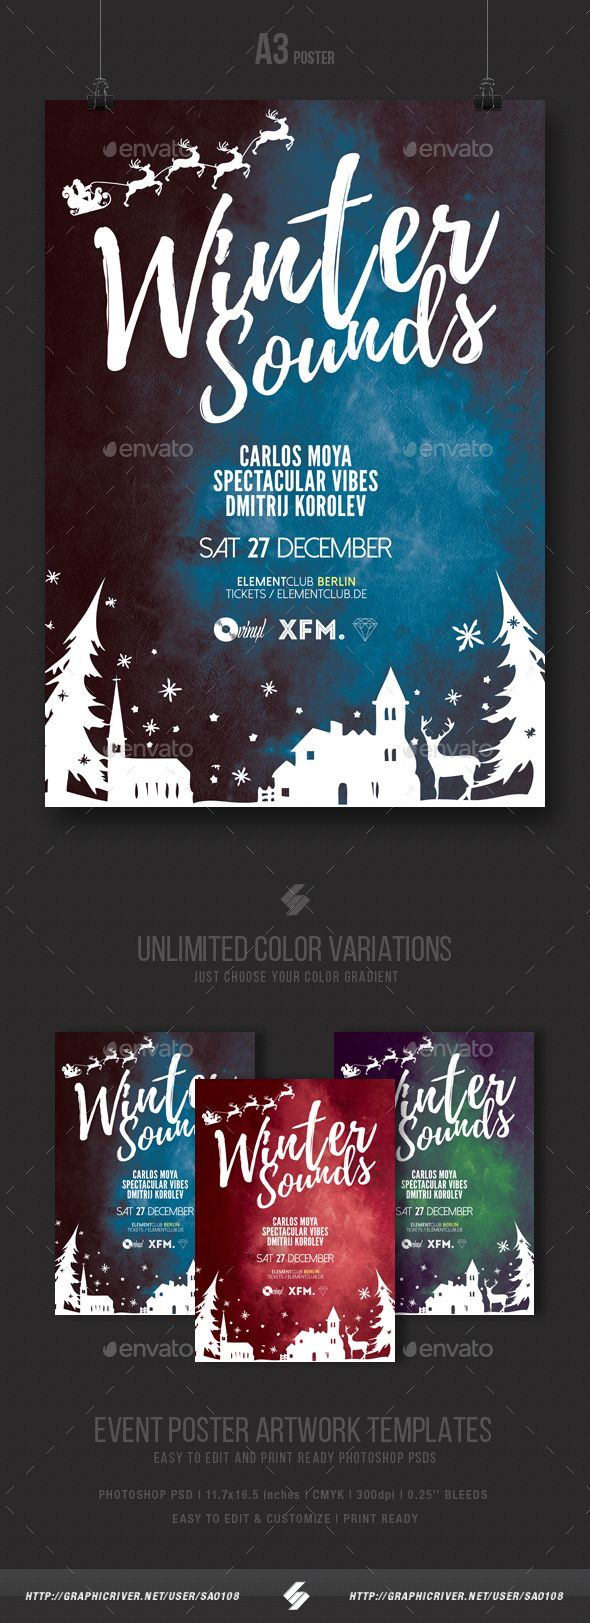 Winter Sounds  Christmas Party Flyer / Poster Template A3 — Photoshop PSD #11.7x16.5 #music • Download ➝ https://graphicriver.net/item/winter-sounds-christmas-party-flyer-poster-template-a3/18979231?ref=pxcr